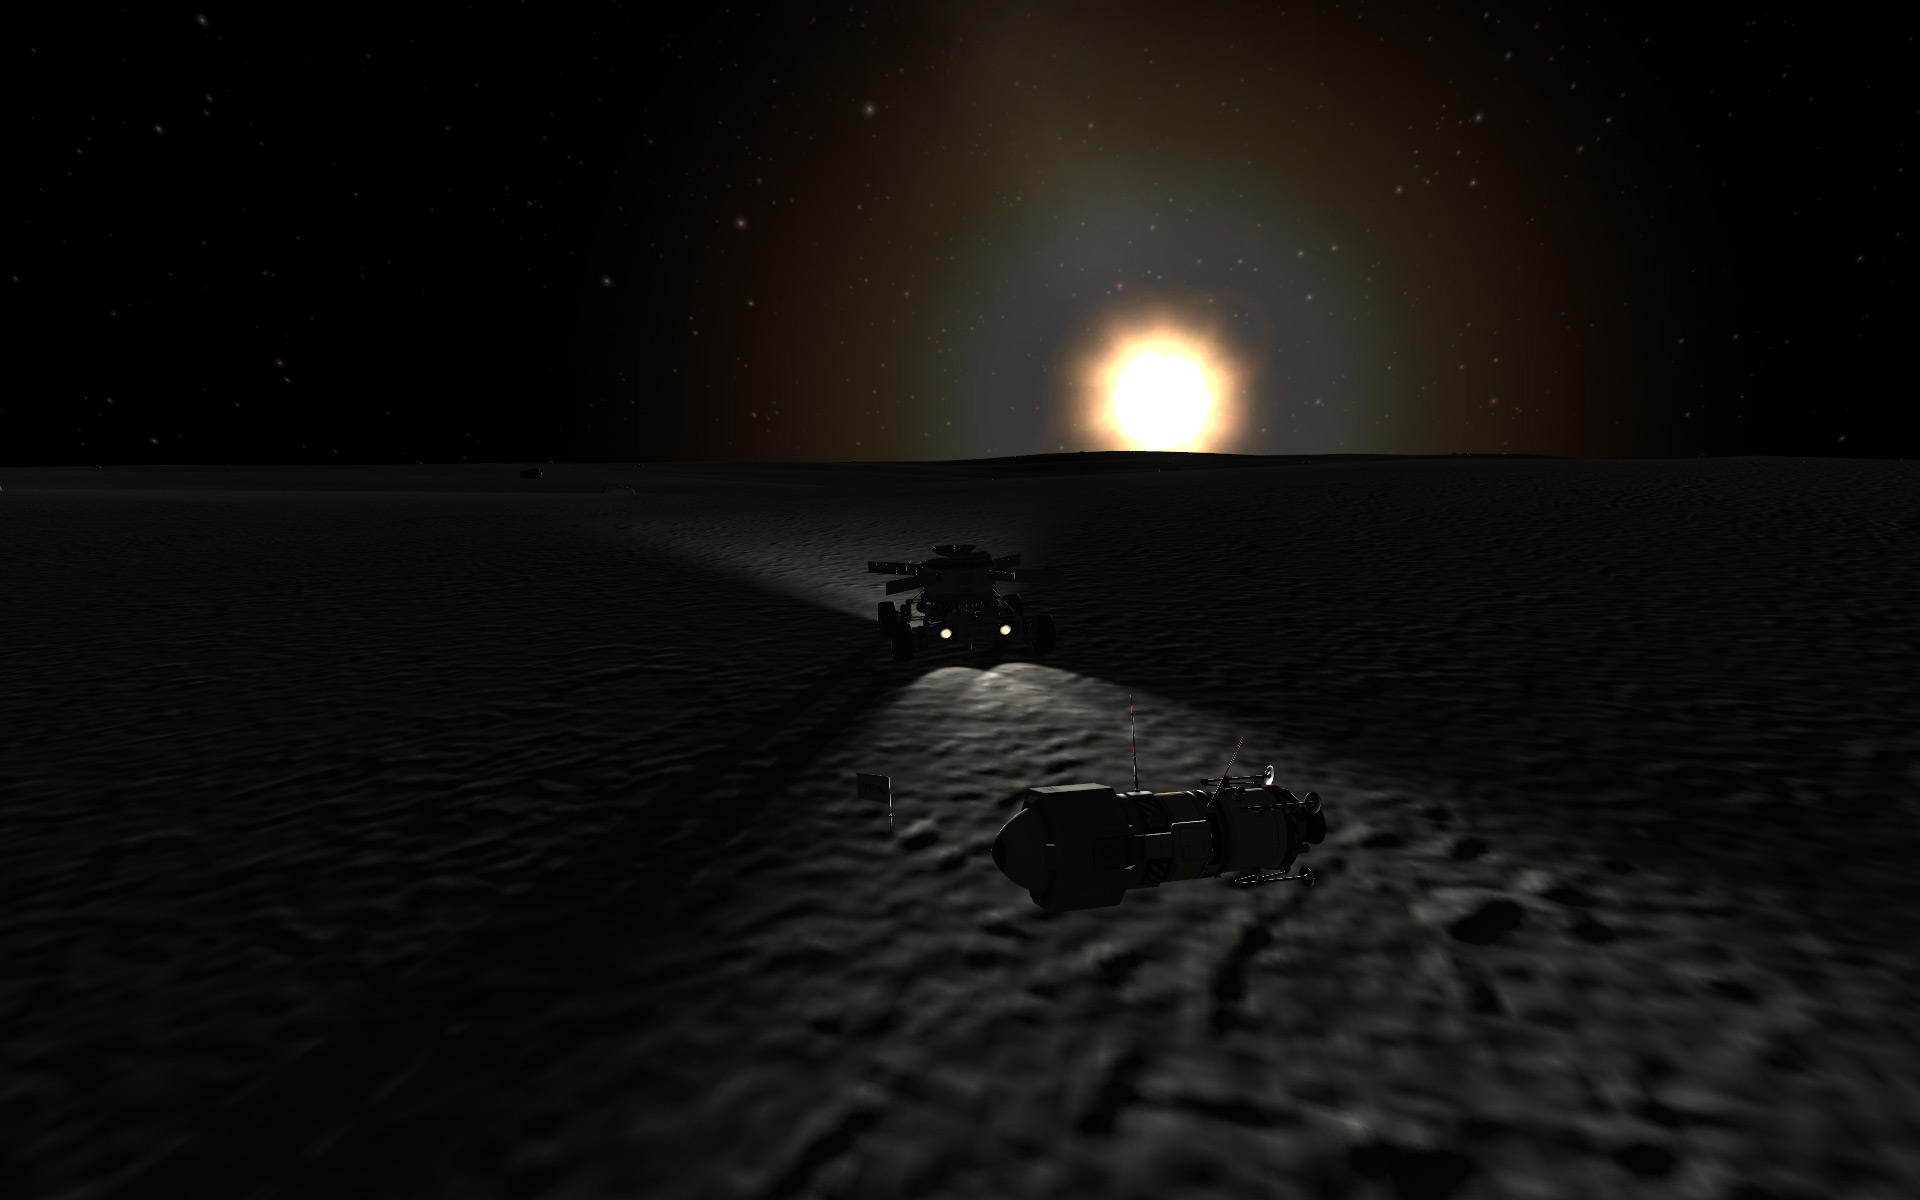 Black Hole Kerbal Space Program - Pics about space